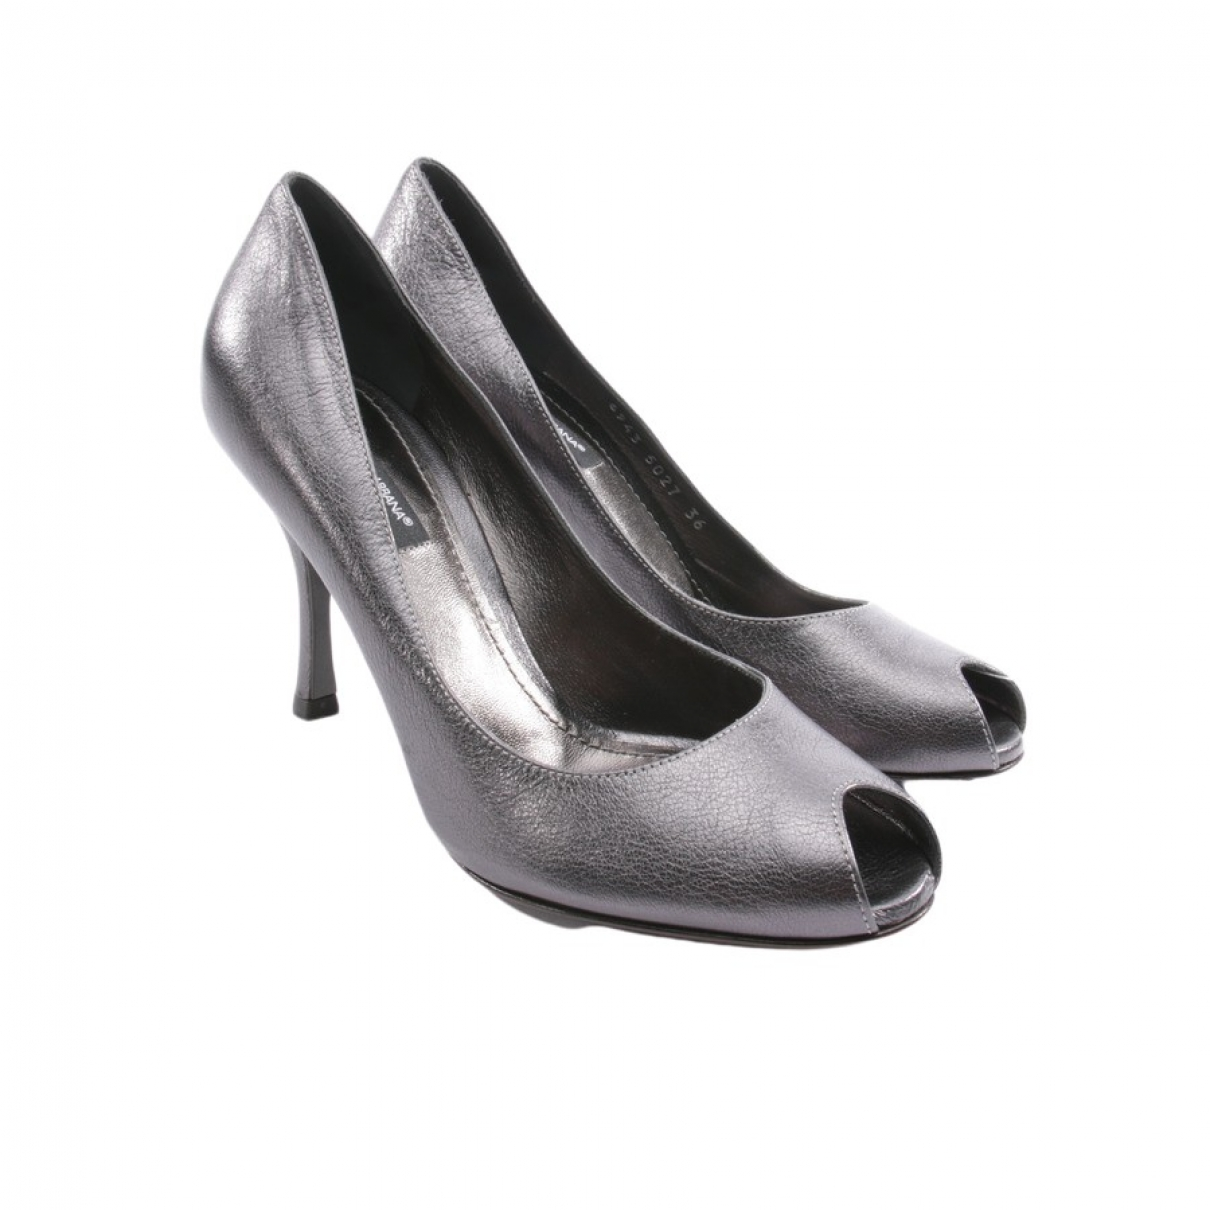 Dolce & Gabbana \N Grey Leather Heels for Women 36 EU